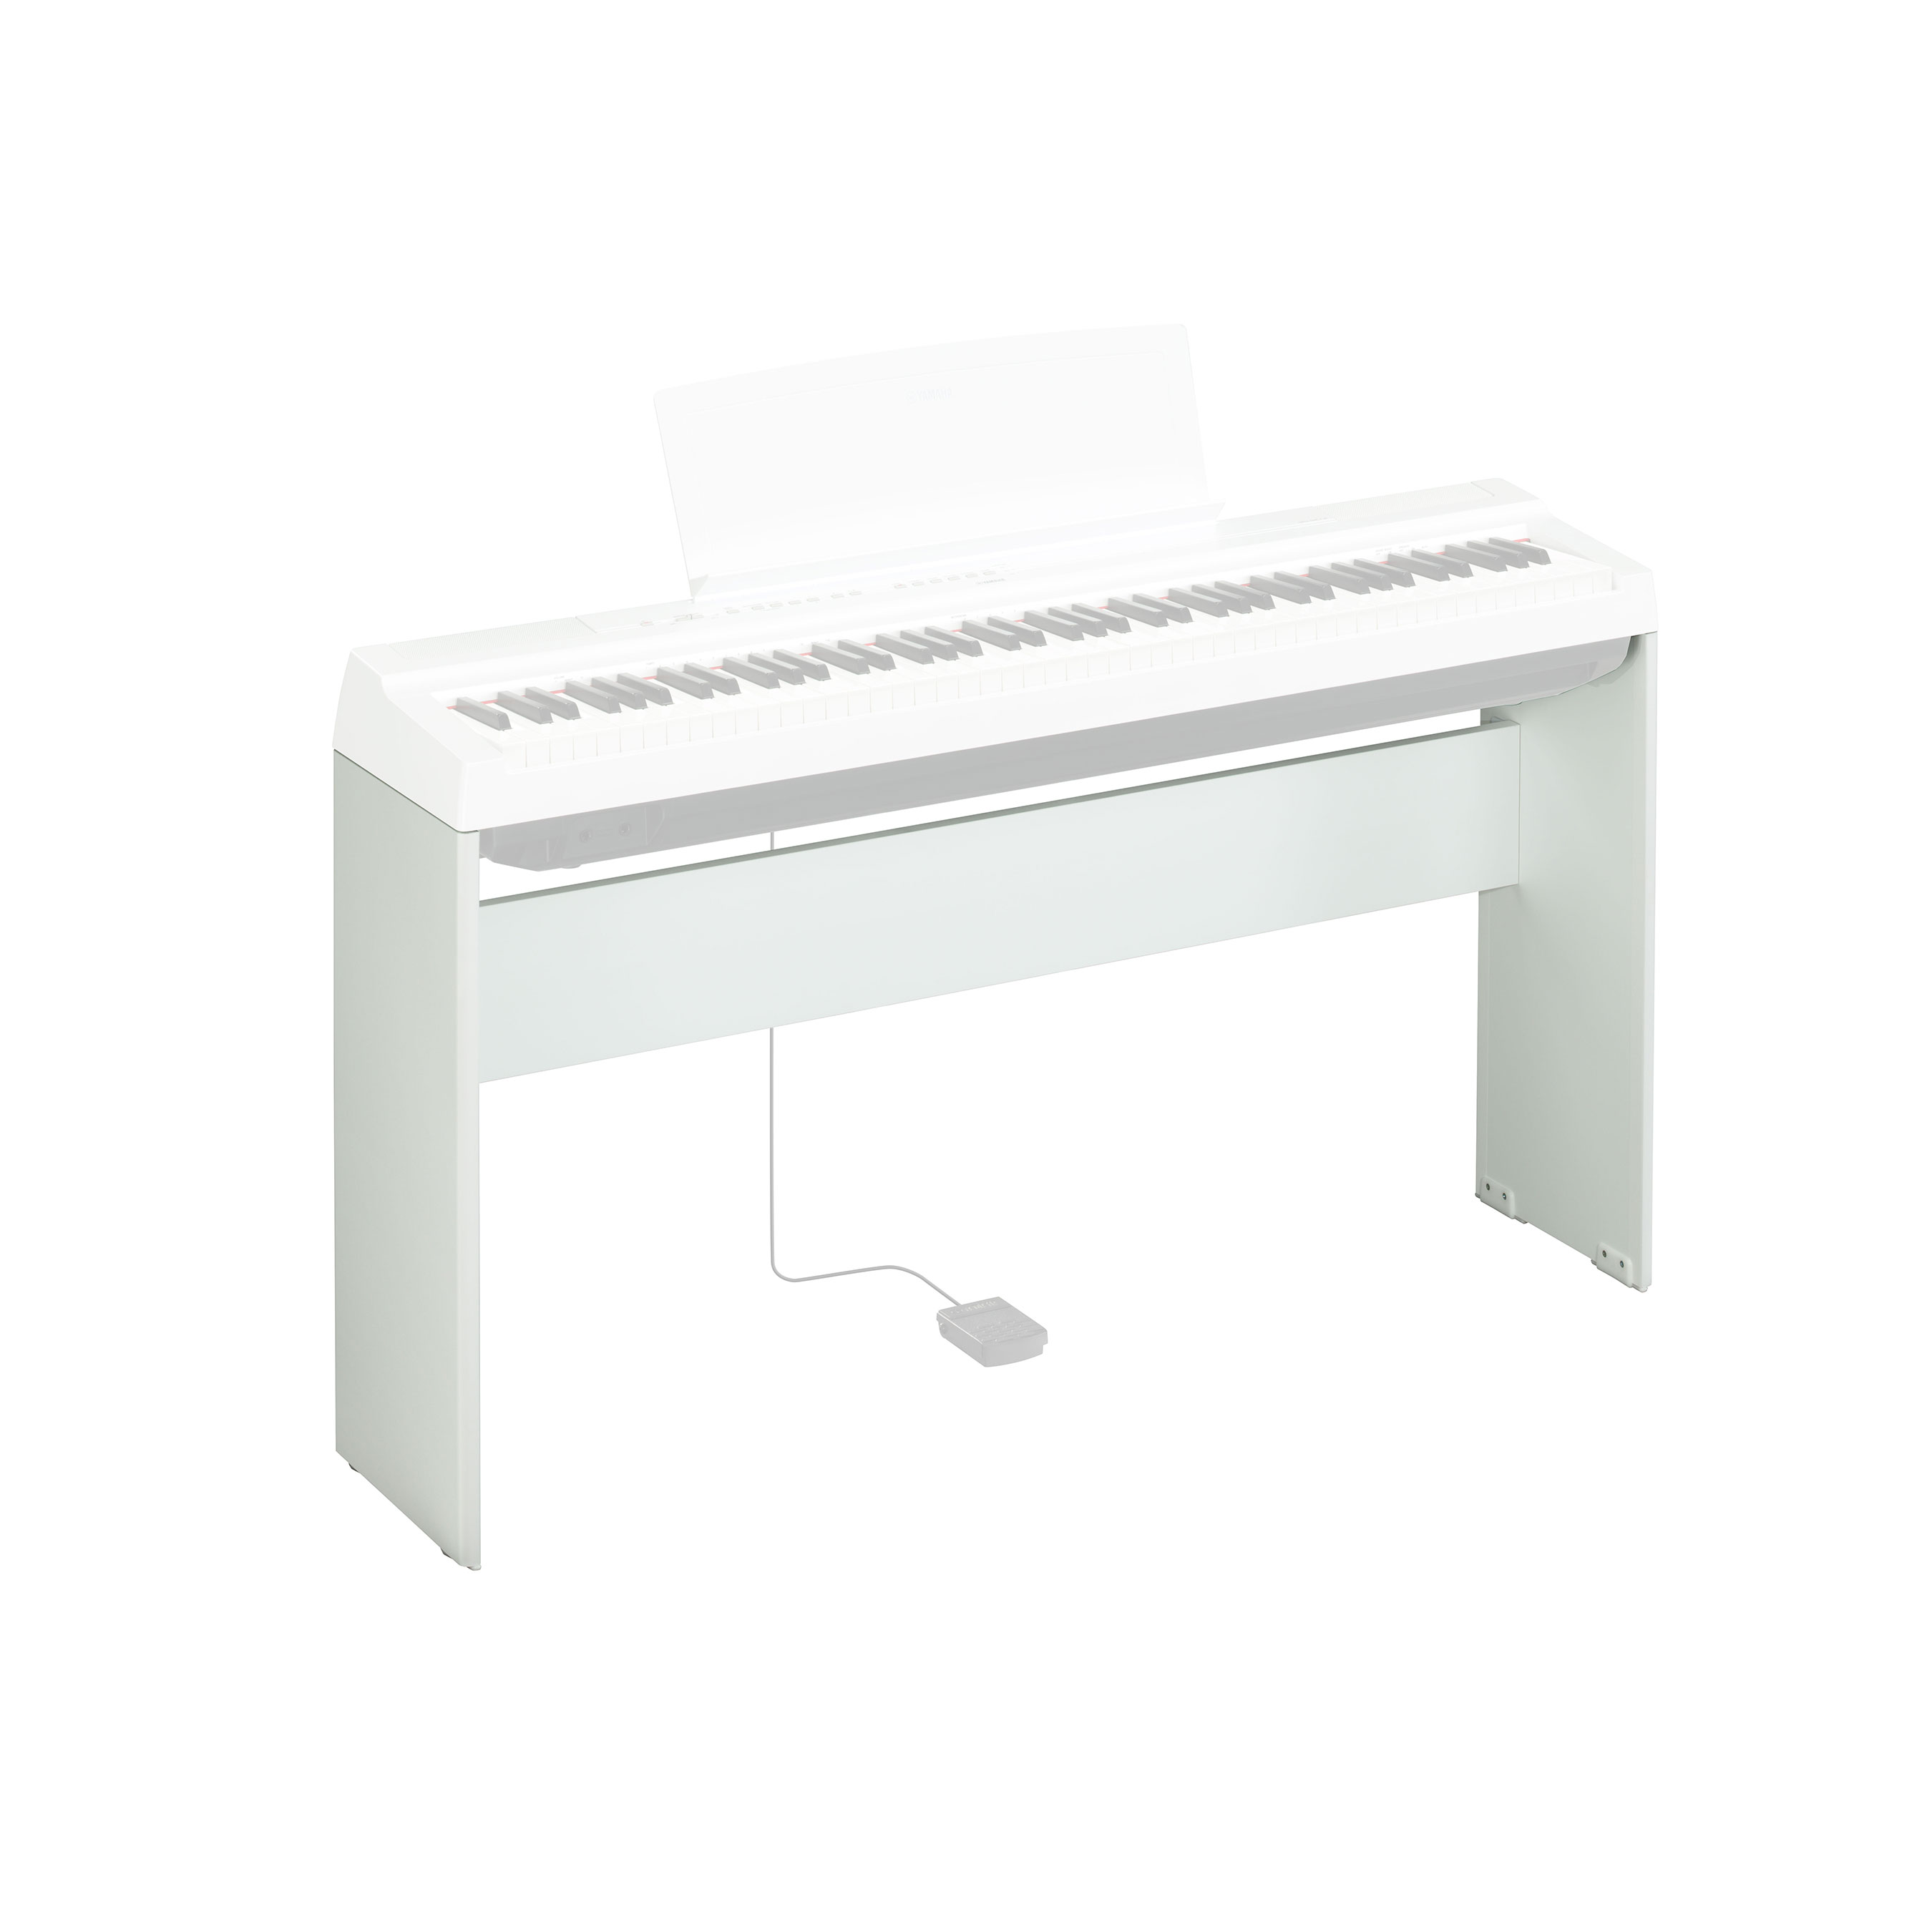 Yamaha - Support L125WH blanc pour piano P-125